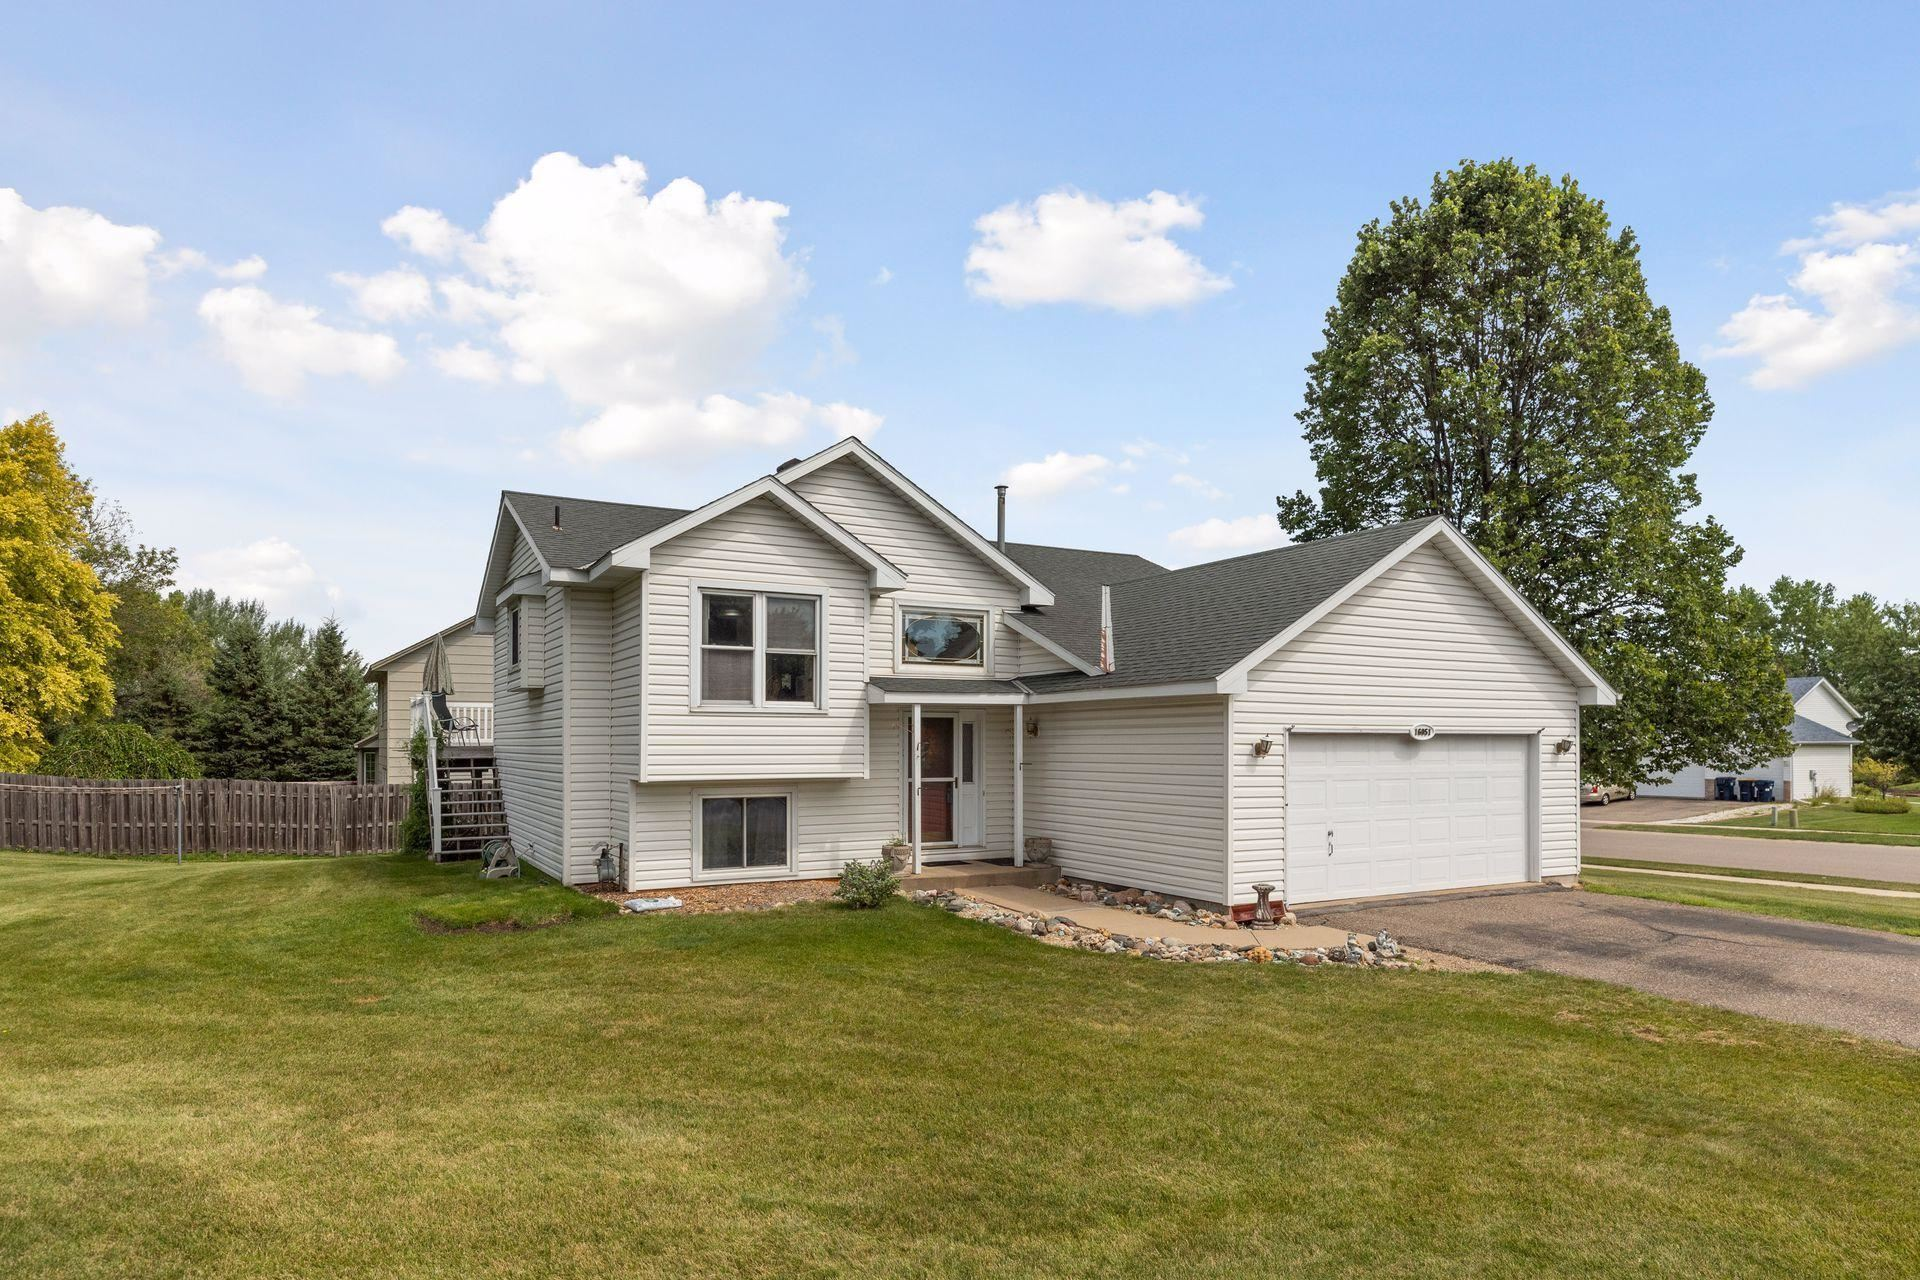 16051 Goodview Way, Lakeville, MN 55044 - MLS#: 5643324